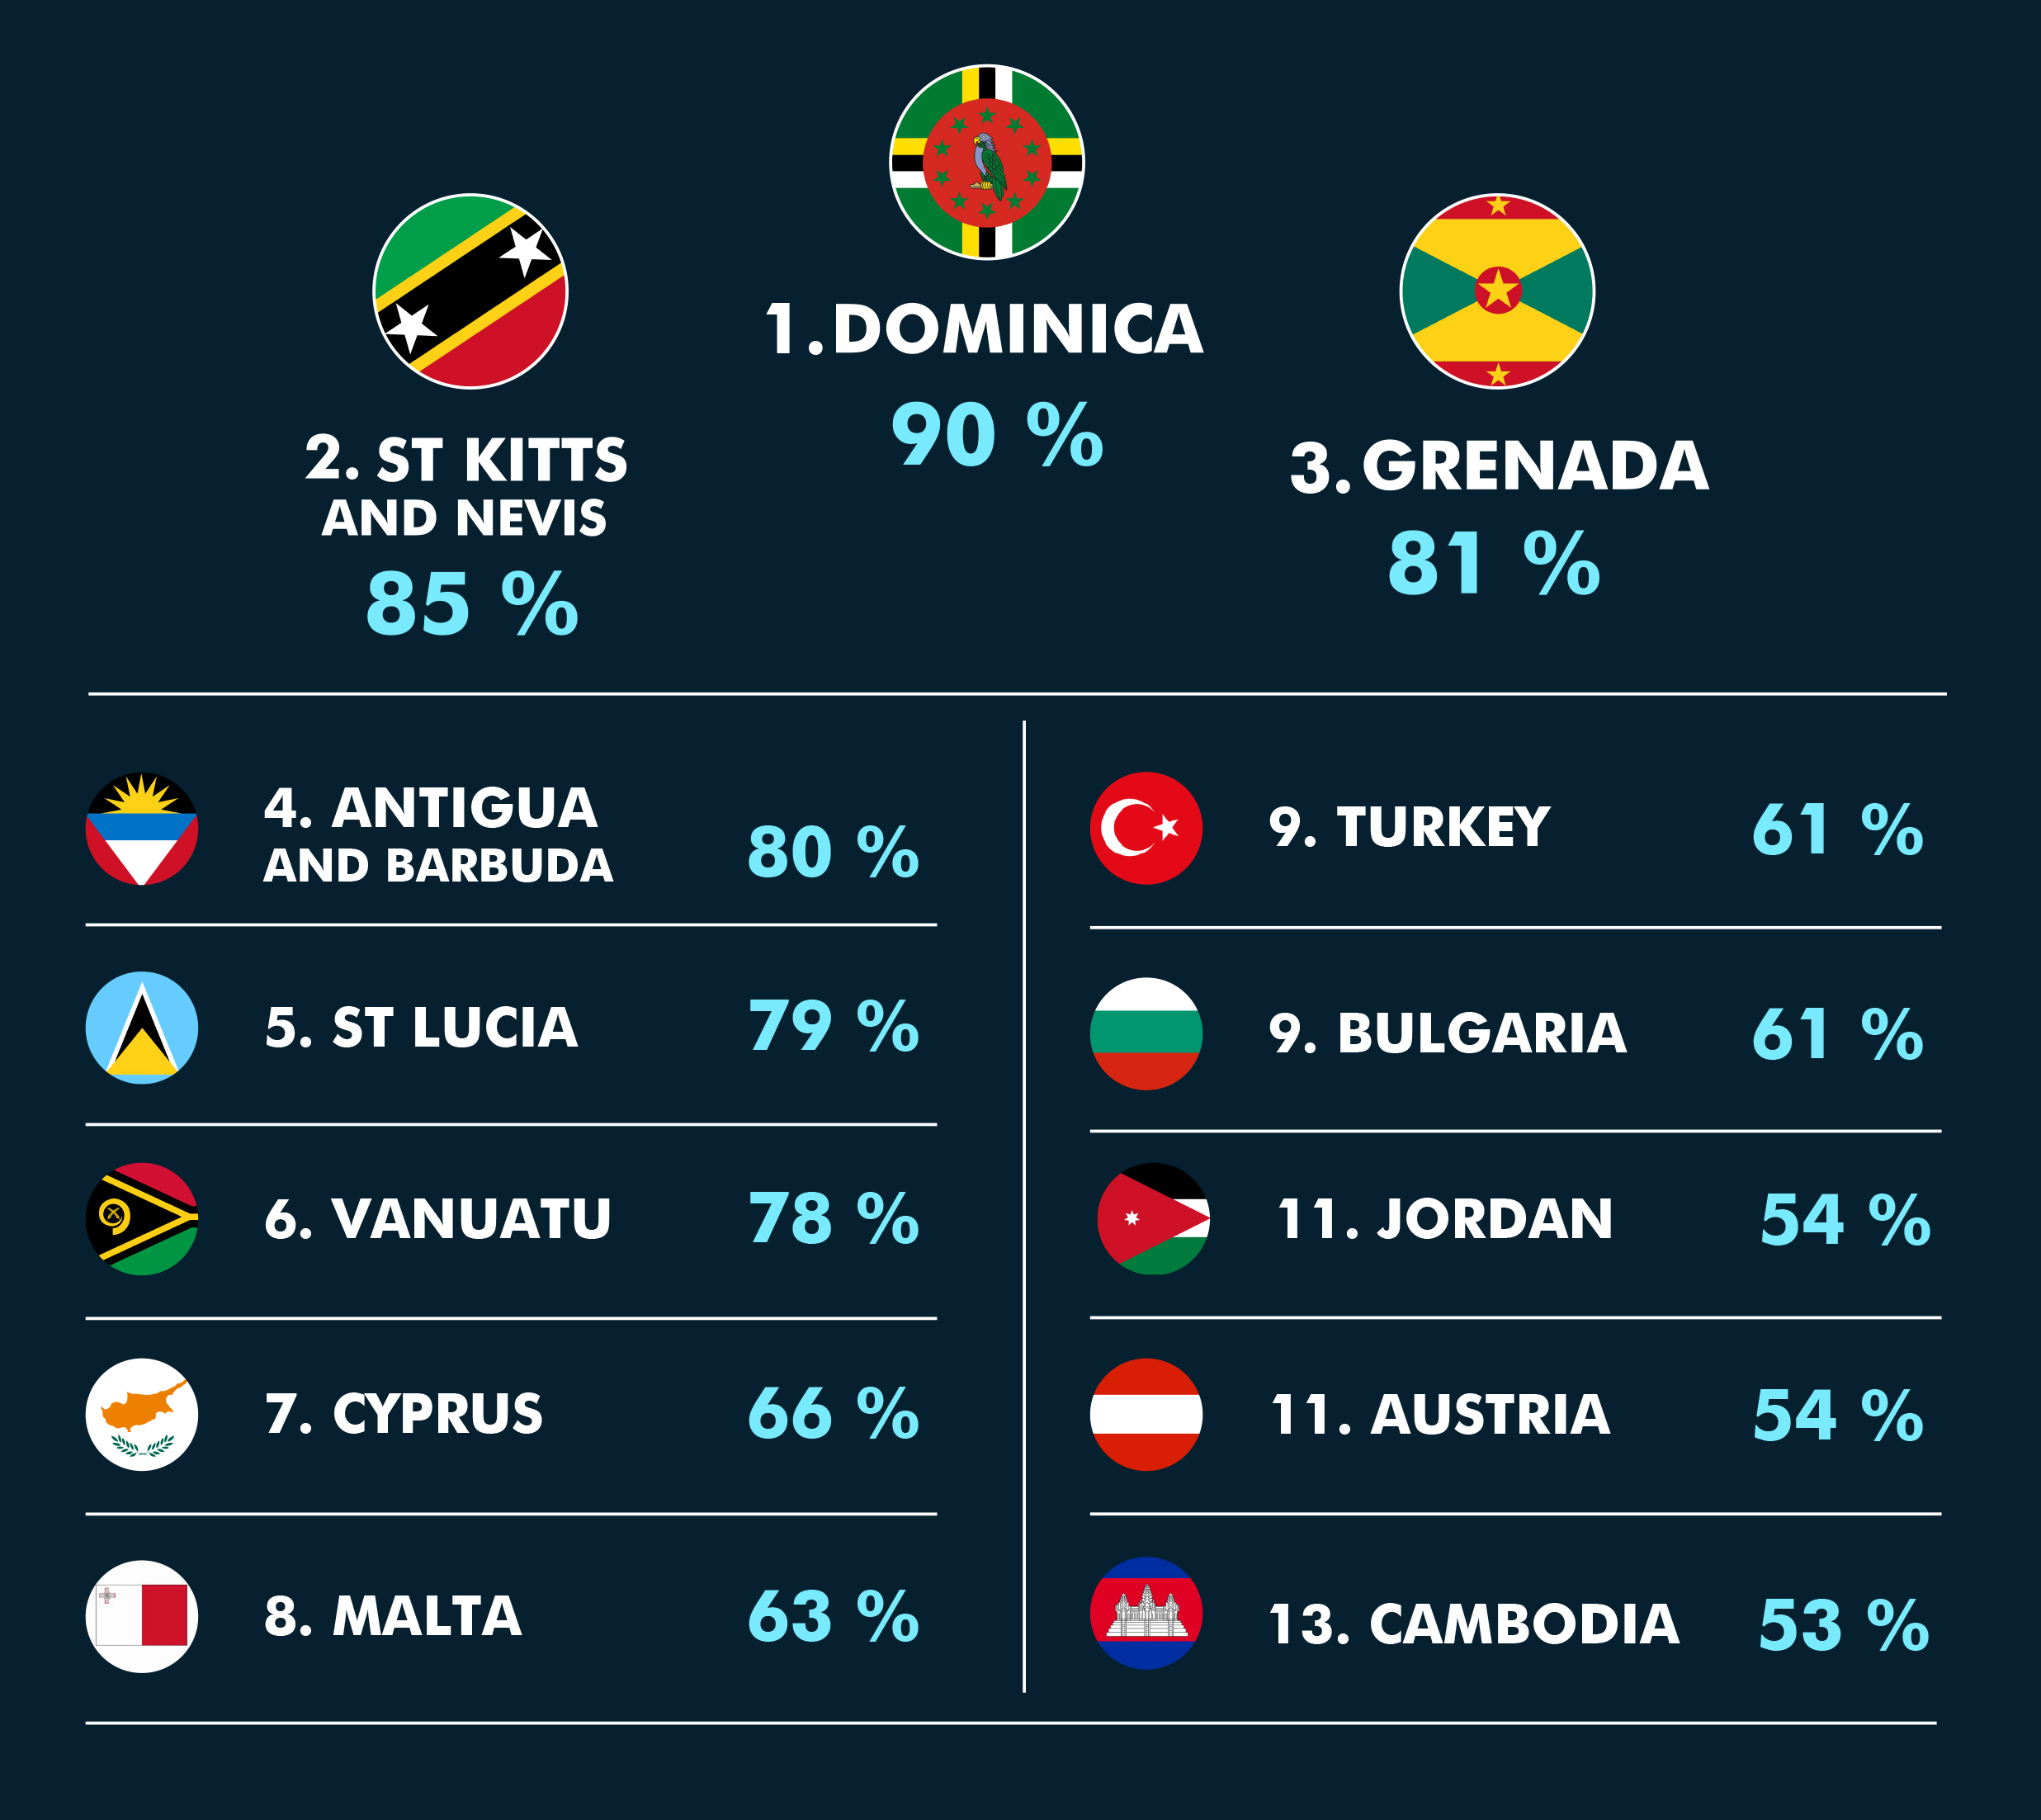 2018 Cbi Index Ranks St Kitts And Nevis No 2 Of 13